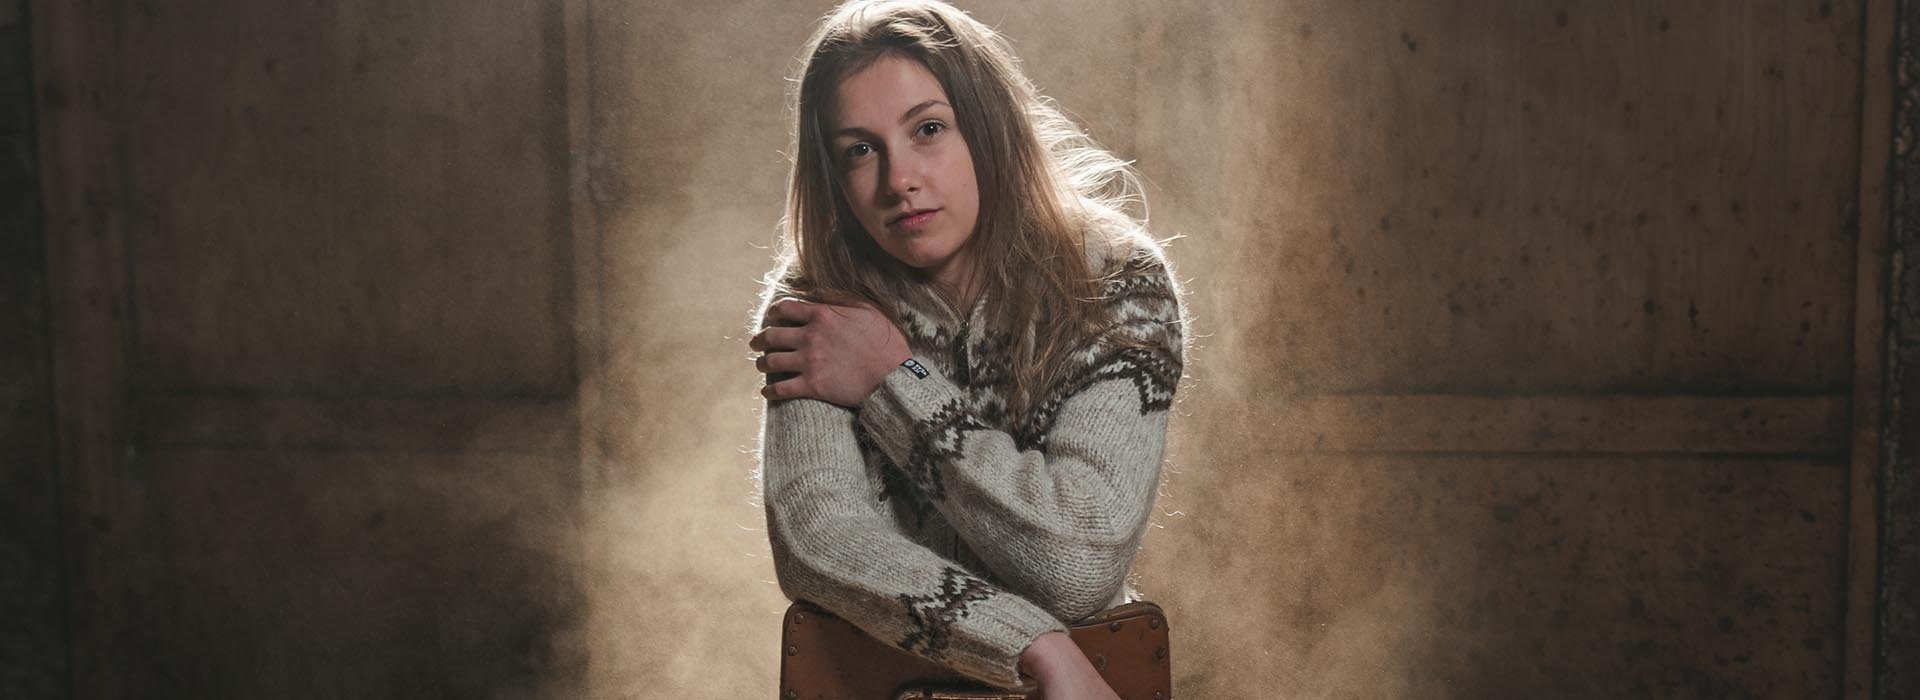 young woman sitting dressed in wool sweater